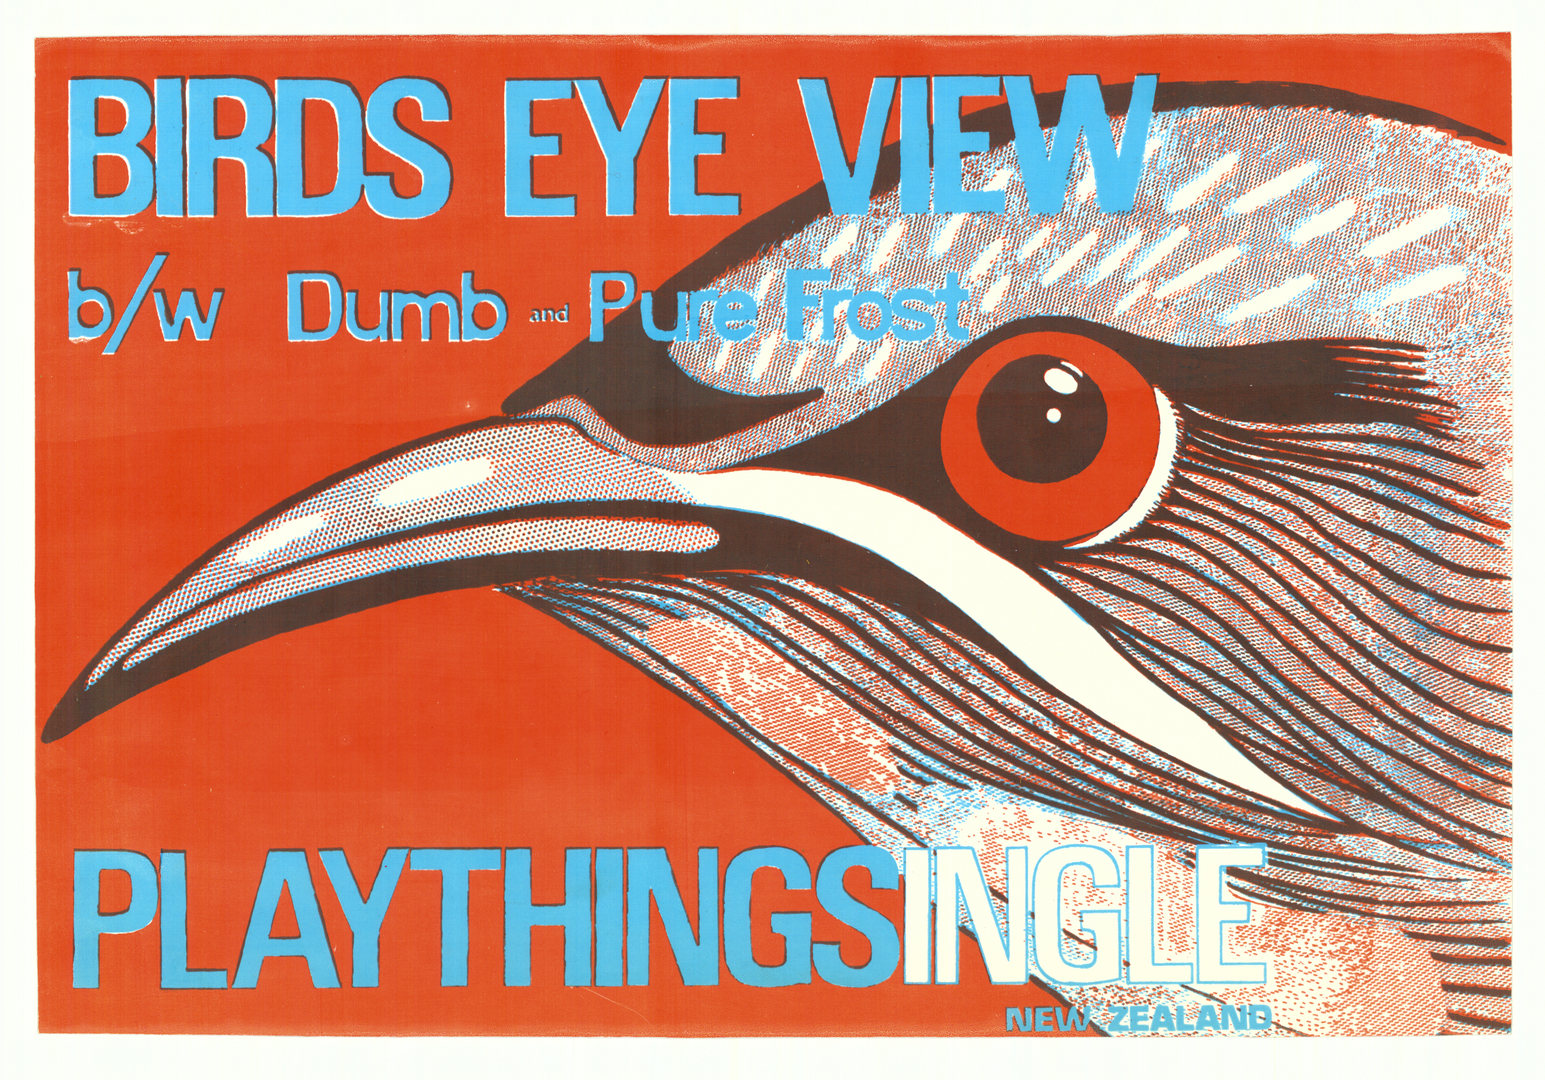 Birds eye view Playthings. In copyright. CCL-Posters-Music-80s-57